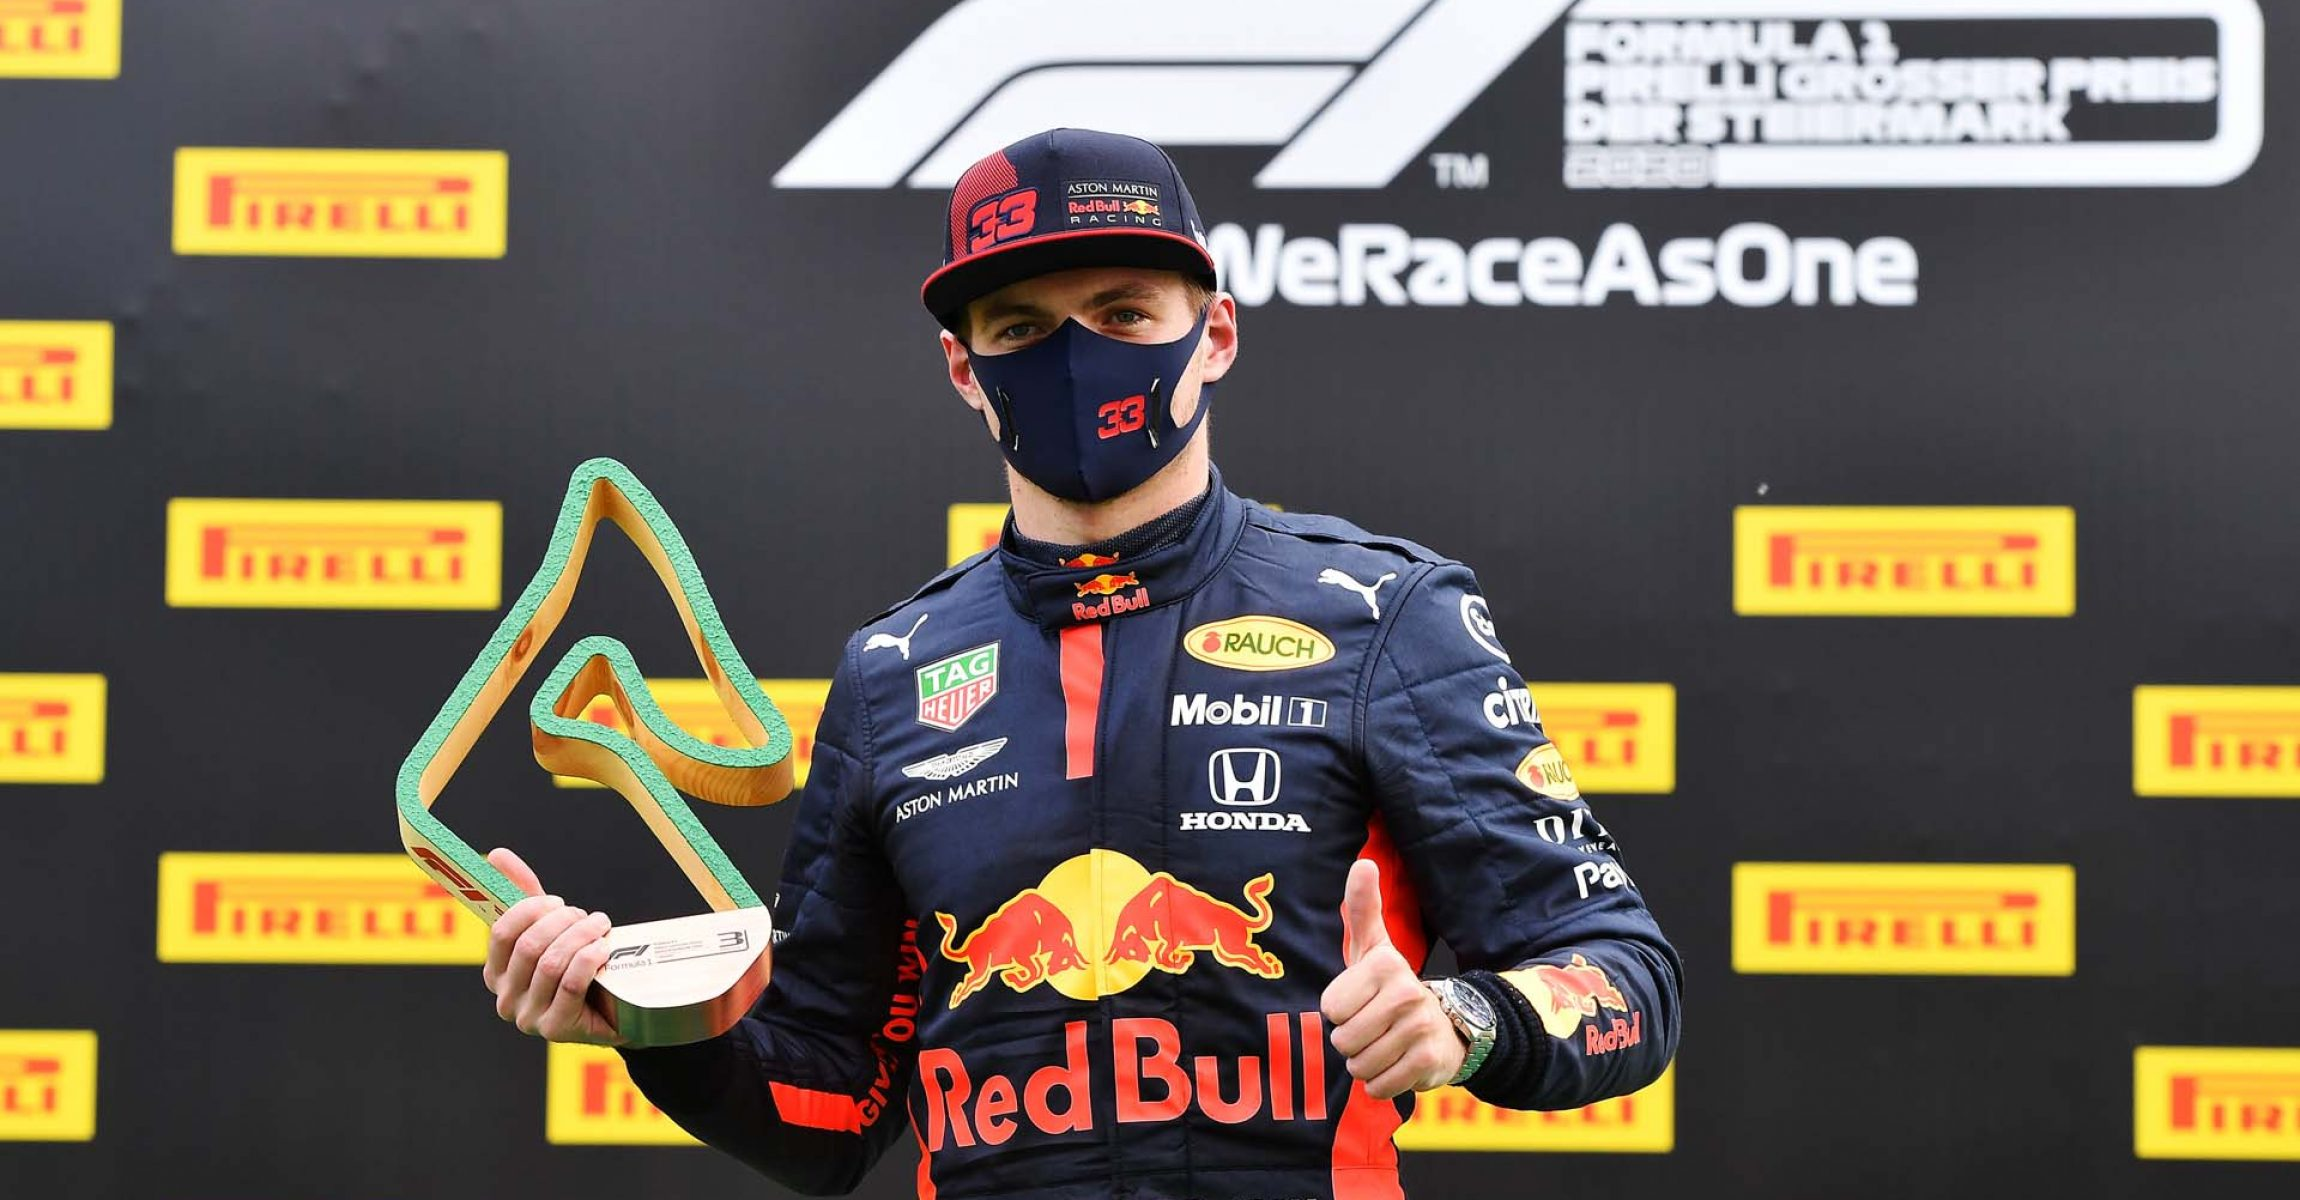 SPIELBERG, AUSTRIA - JULY 12: Third placed Max Verstappen of Netherlands and Red Bull Racing celebrates on the podium following the Formula One Grand Prix of Styria at Red Bull Ring on July 12, 2020 in Spielberg, Austria. (Photo by Joe Klamar/Pool via Getty Images) // Getty Images / Red Bull Content Pool  // AP-24KY27X8N1W11 // Usage for editorial use only //